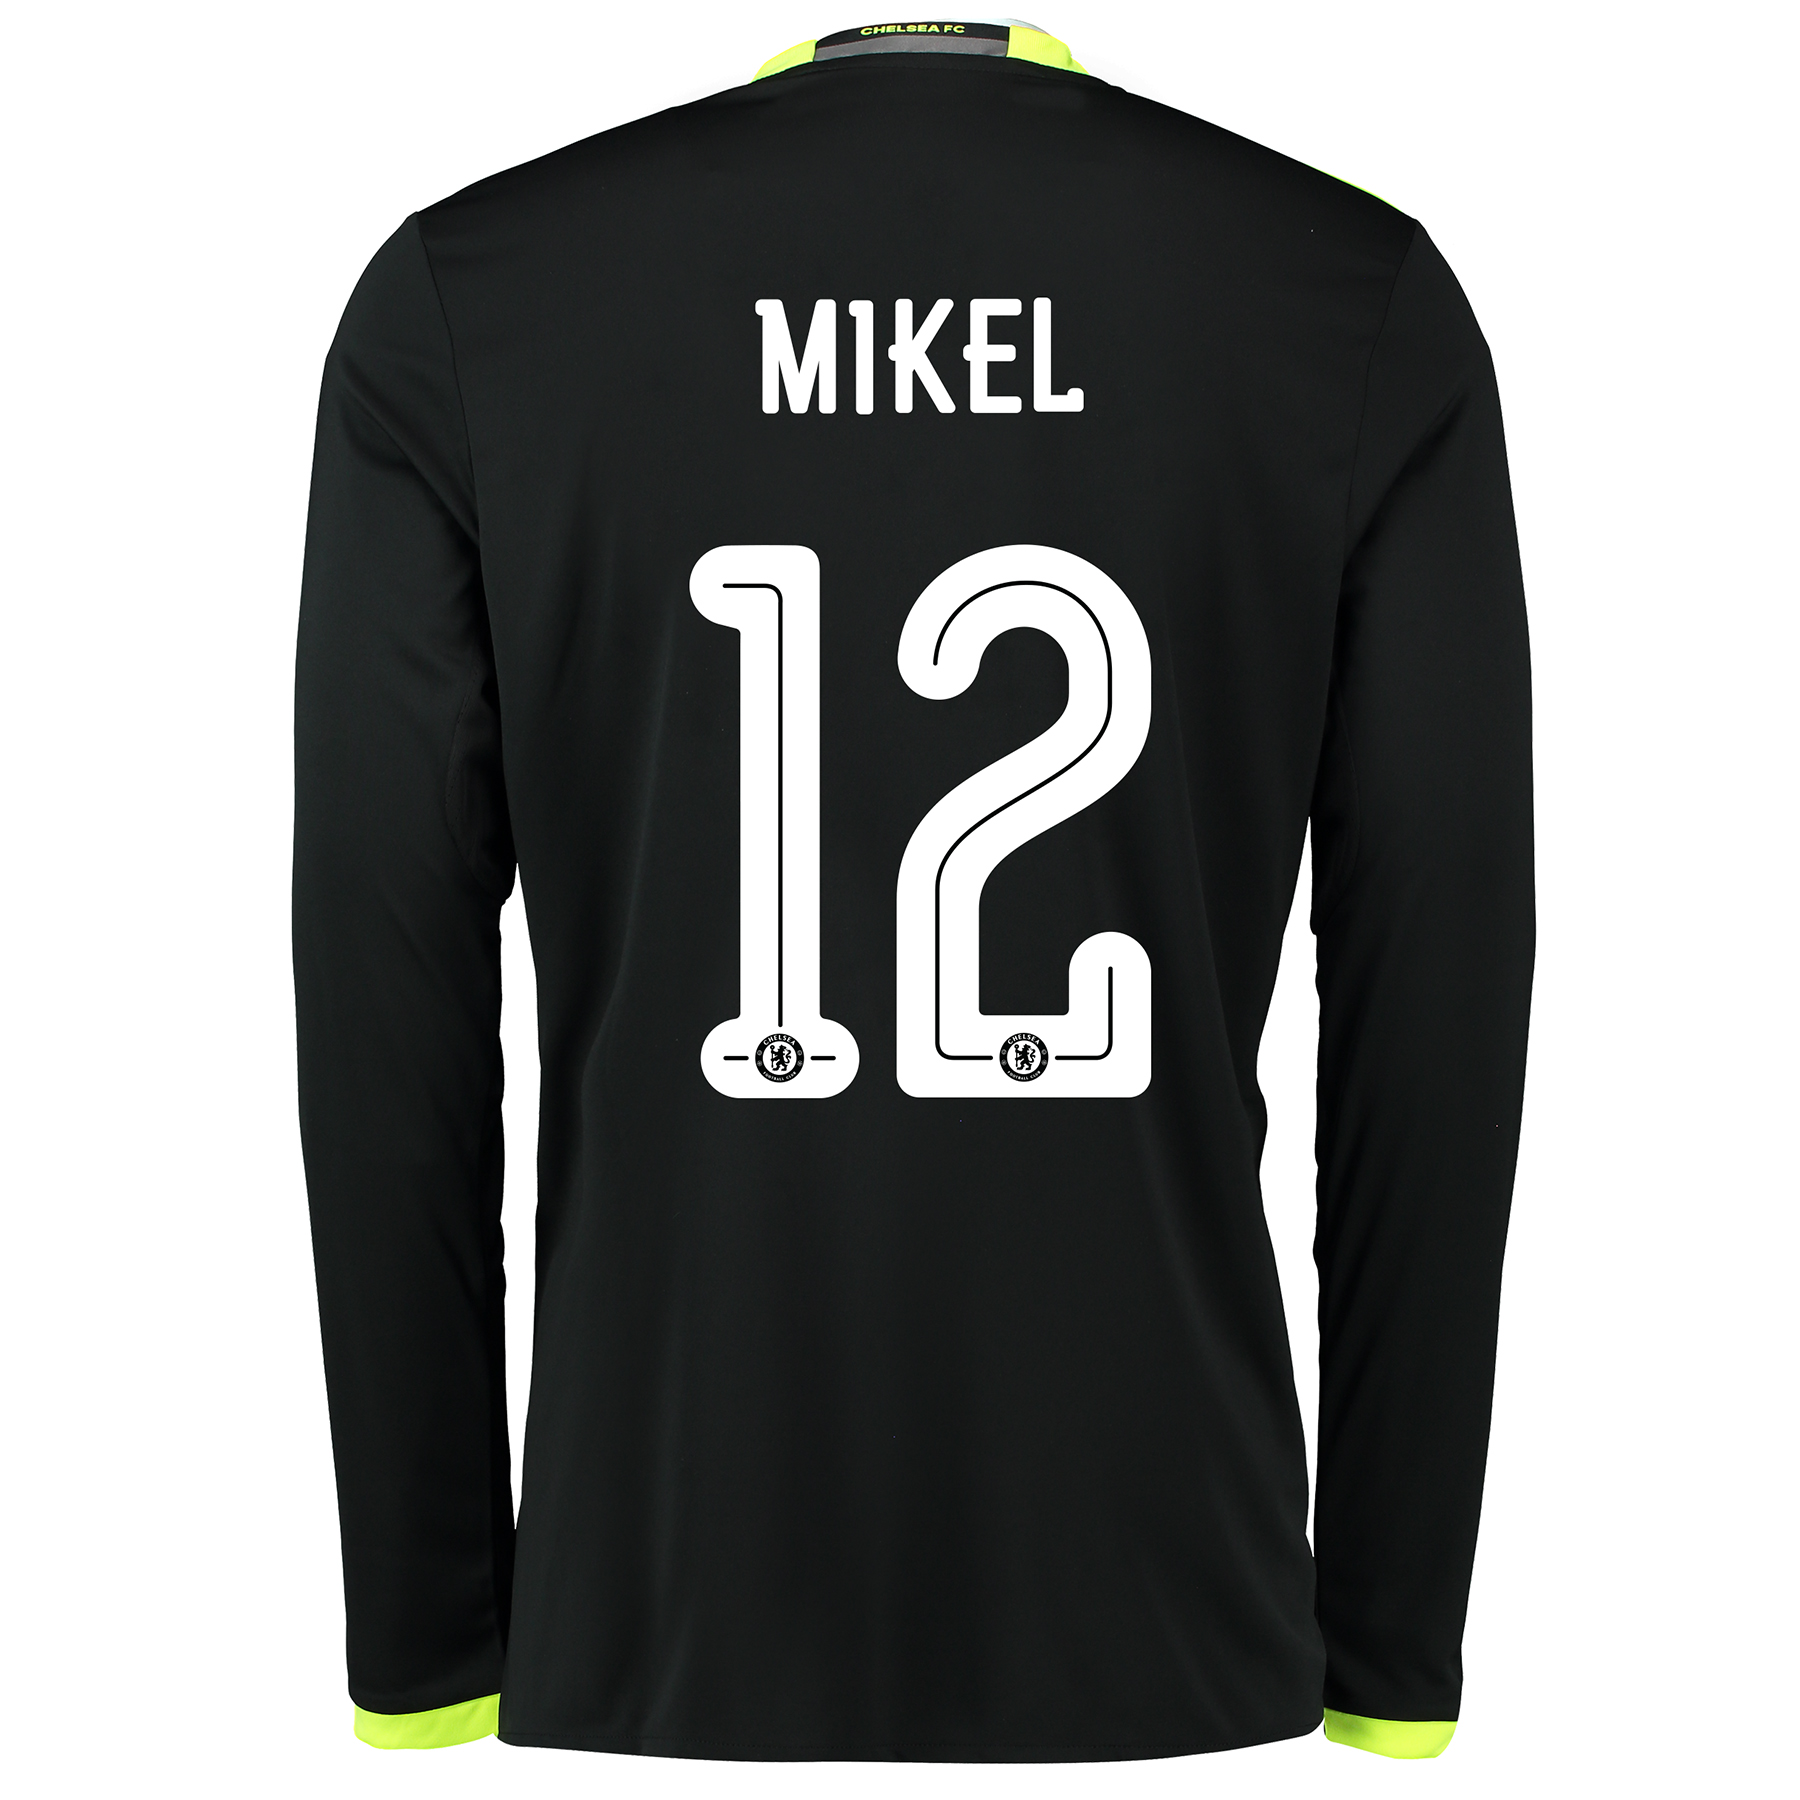 Chelsea Linear Away Shirt 16-17 - Kids - Long Sleeve with Mikel 12 pri